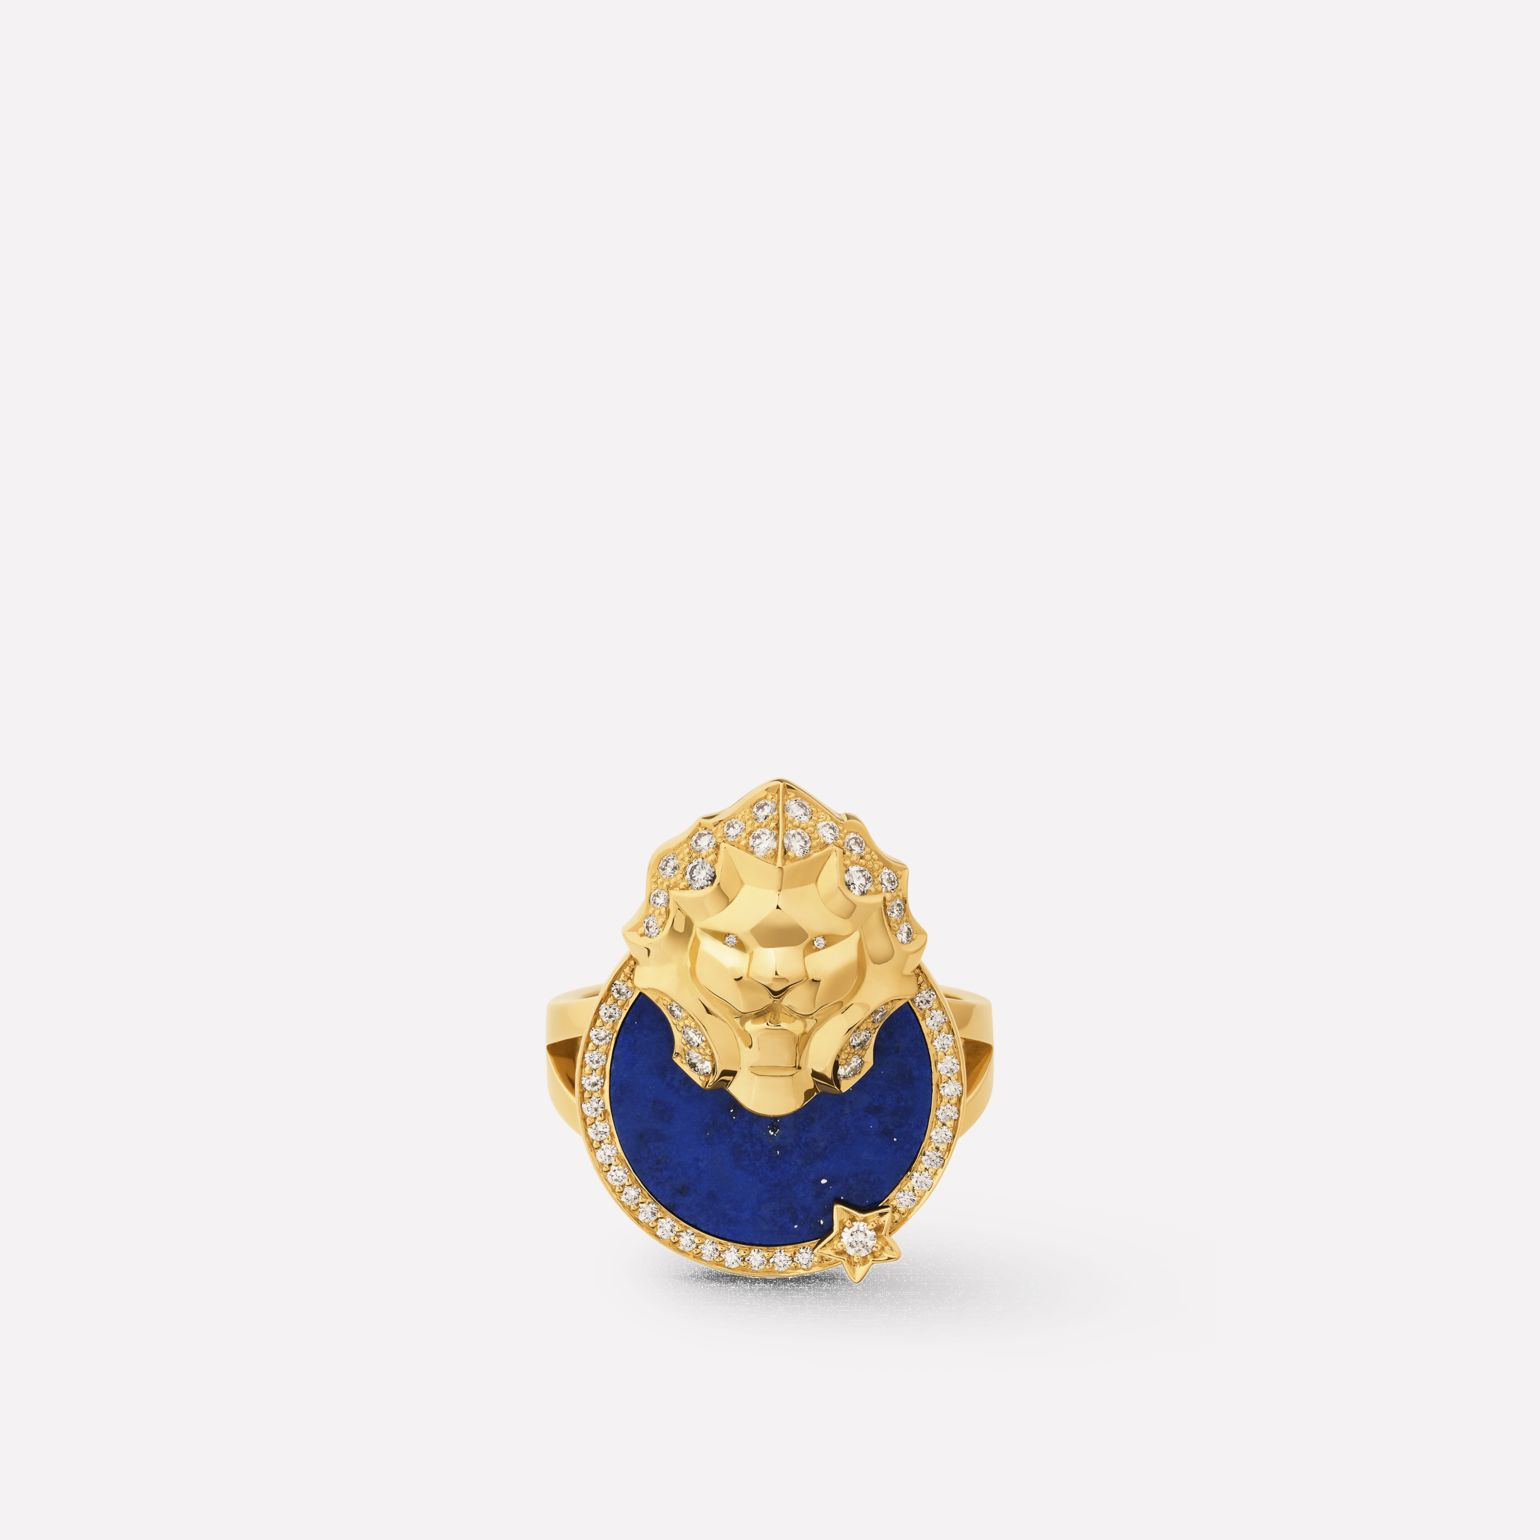 Lion Médaille ring 18K yellow gold, diamonds, lapis lazuli